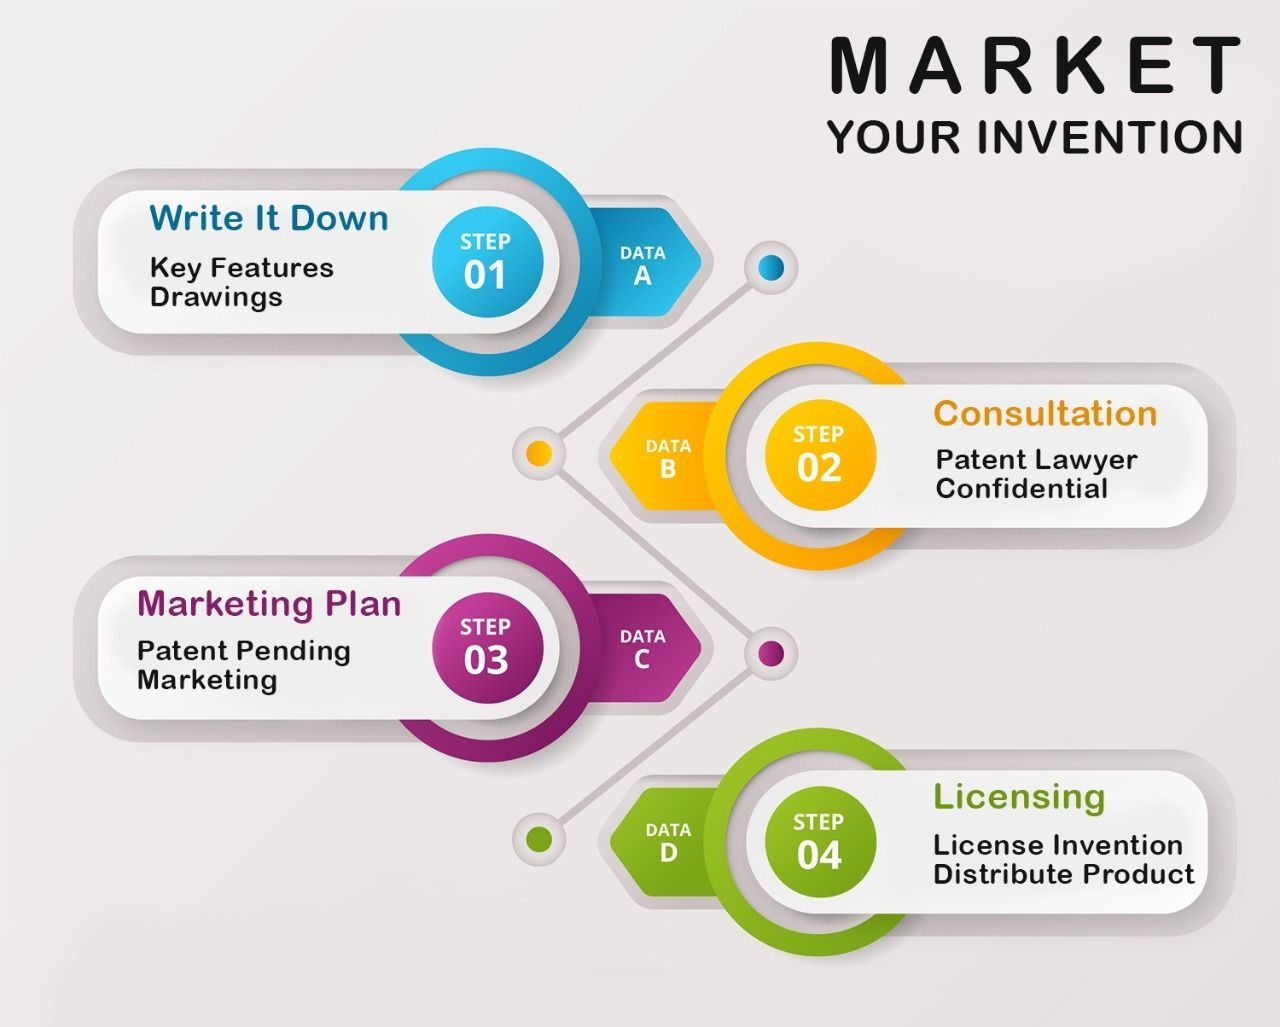 Market Your Invention Inventions Marketing Marketing Plan